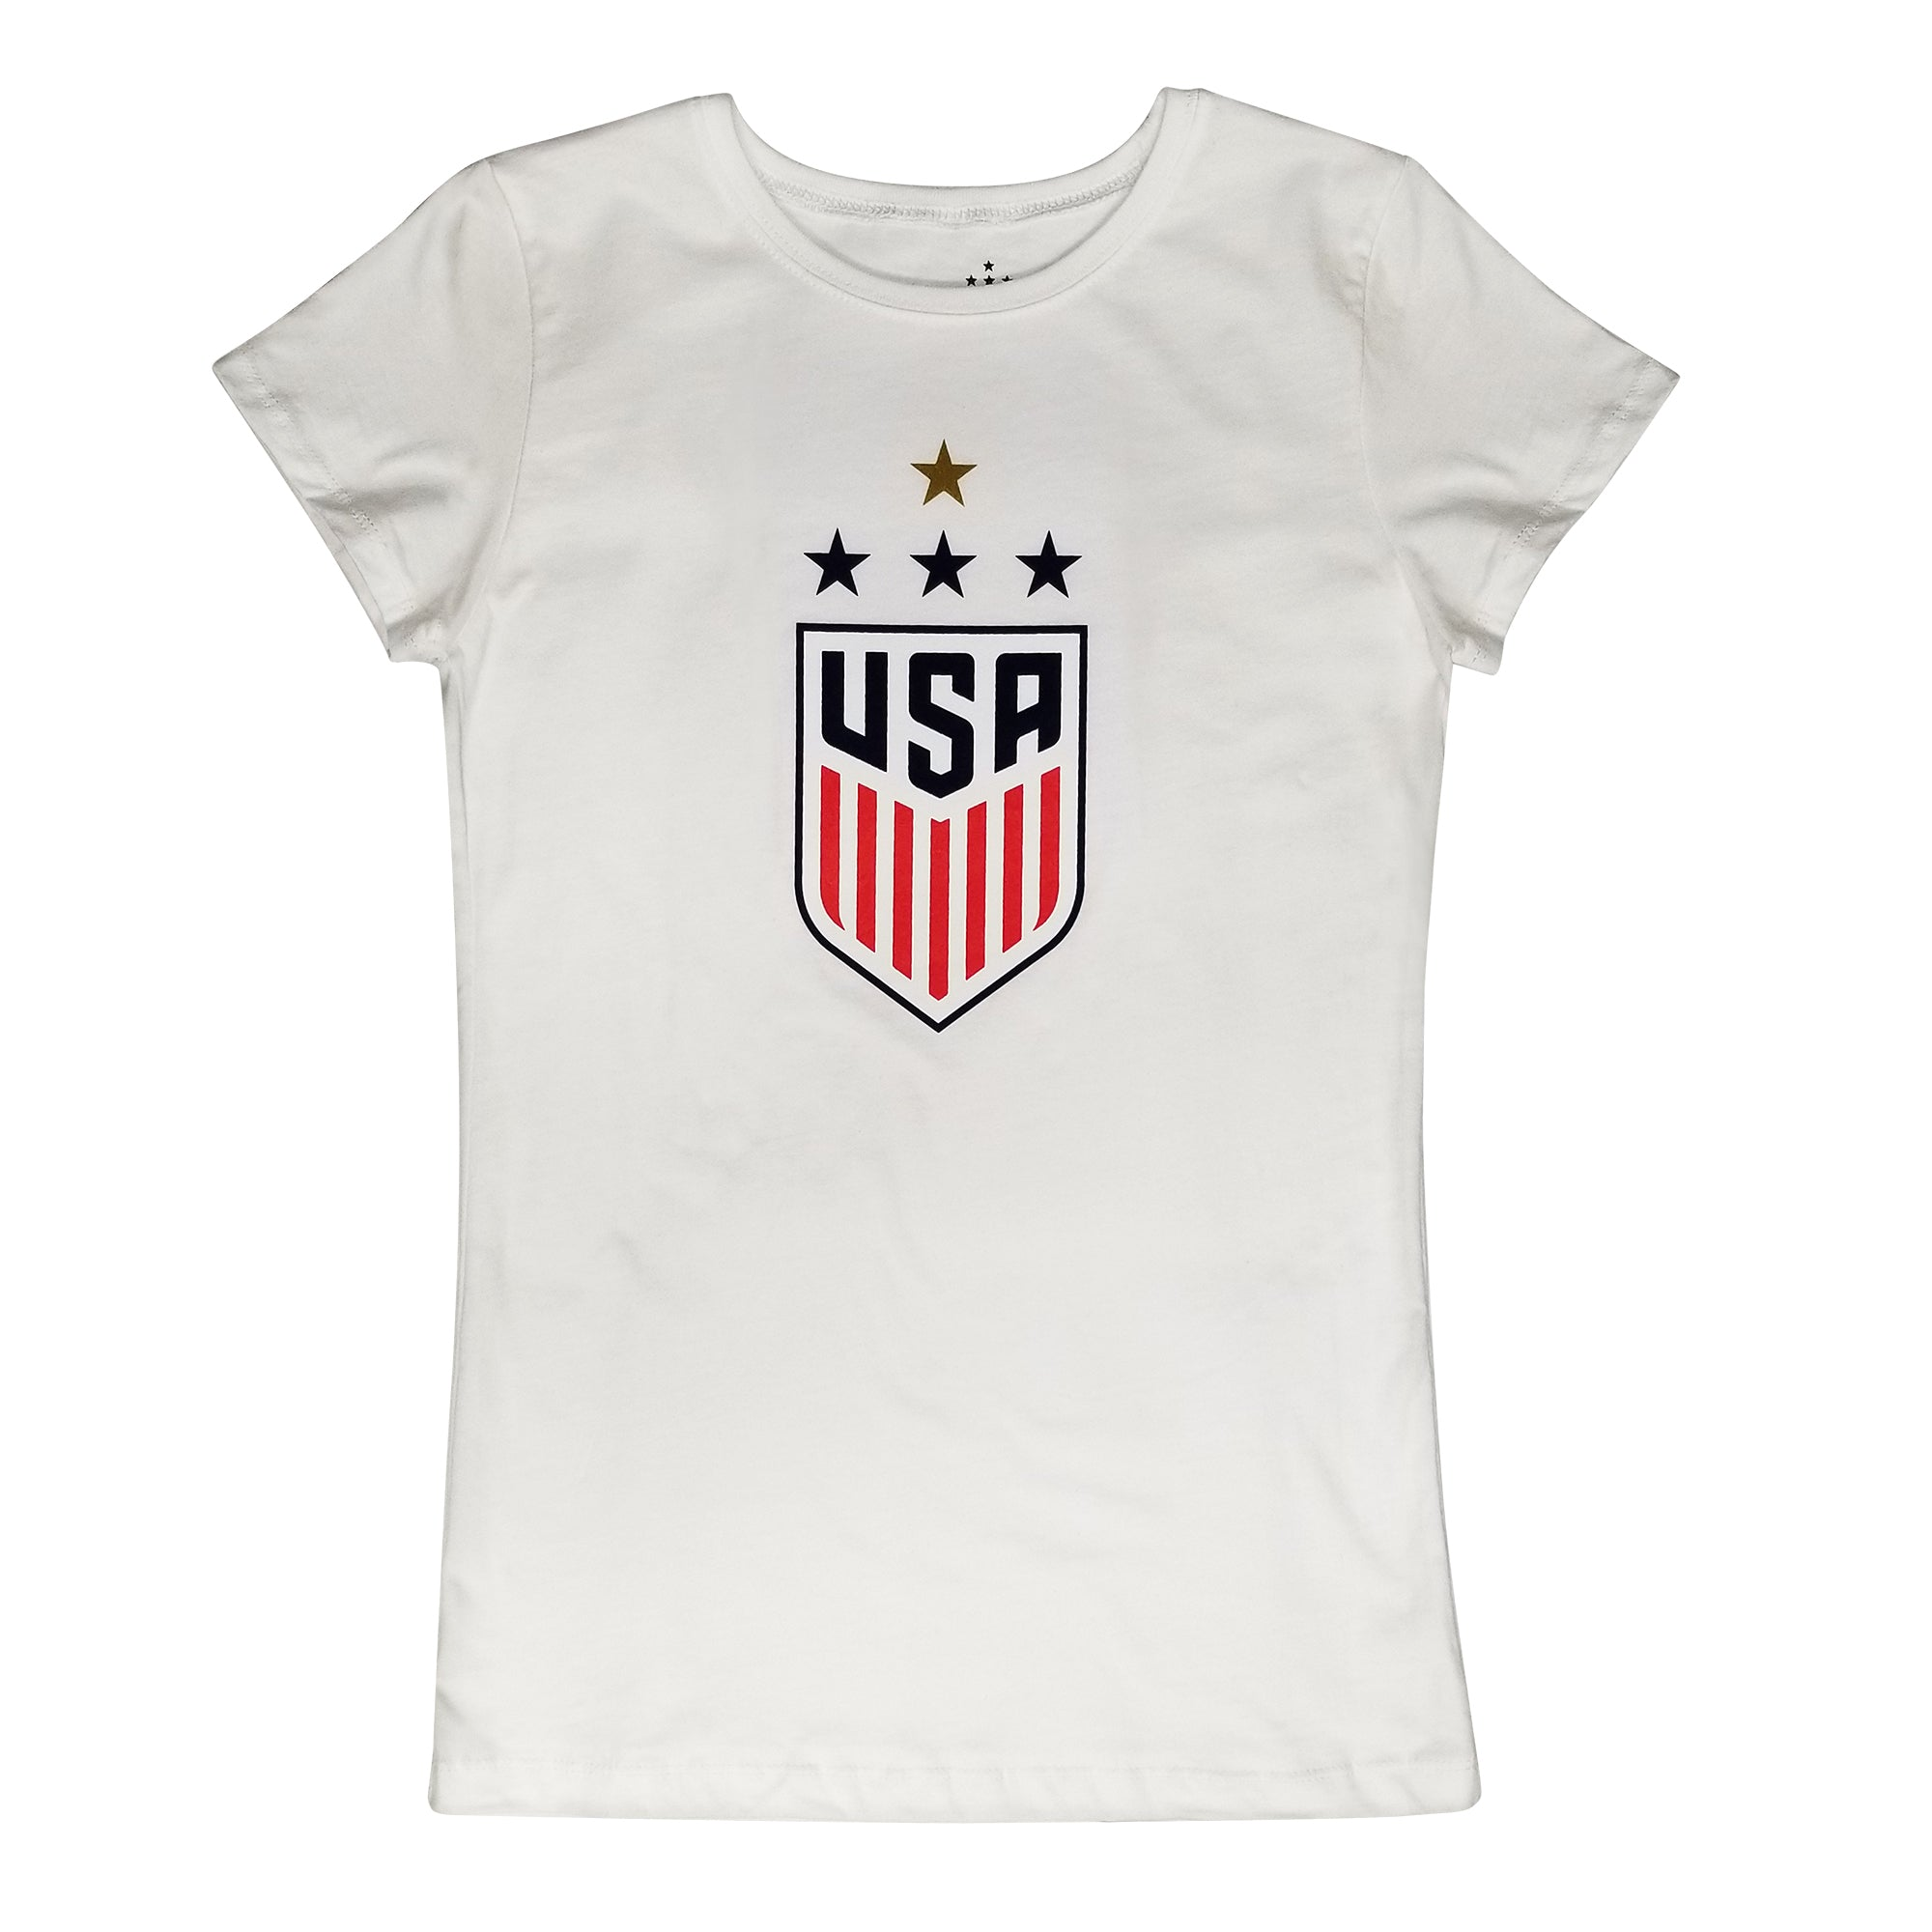 U.S. Soccer USWNT 4 Star Celebration Crest Girl's Princess Tee by Icon Sports